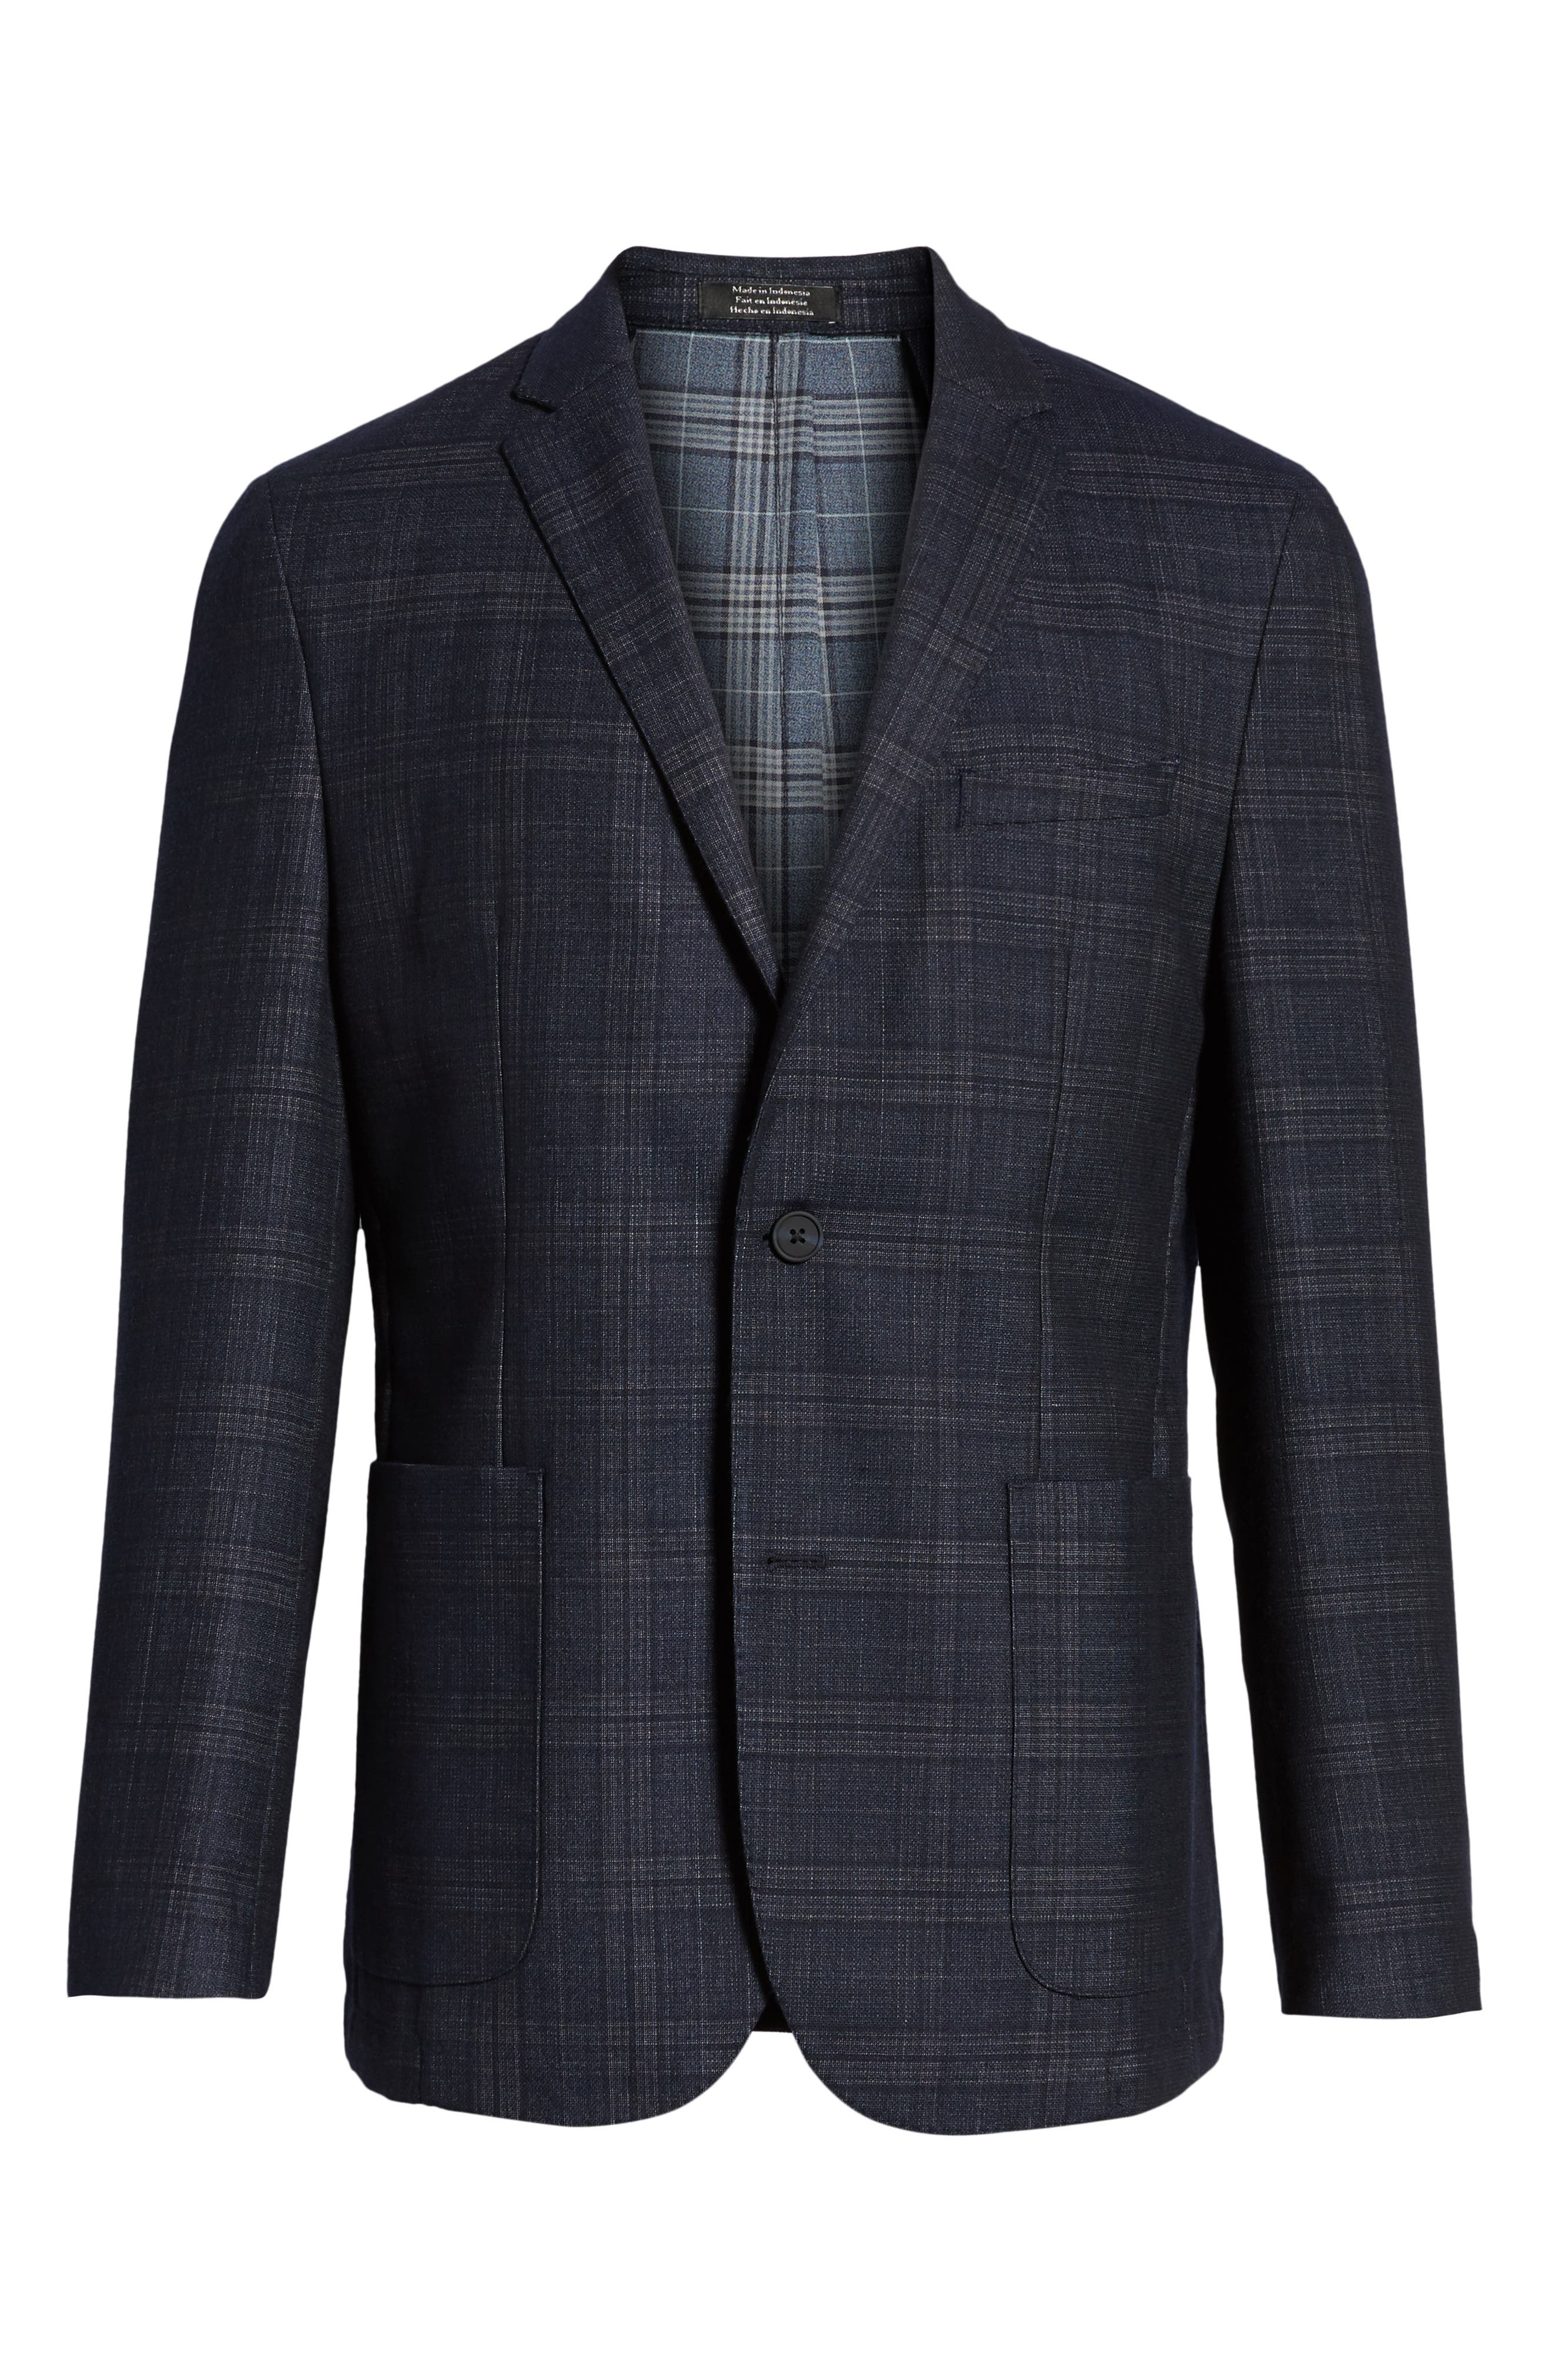 VINCE CAMUTO,                             Dell Aria Unconstructed Sport Coat,                             Alternate thumbnail 5, color,                             NAVY GRIN THRU